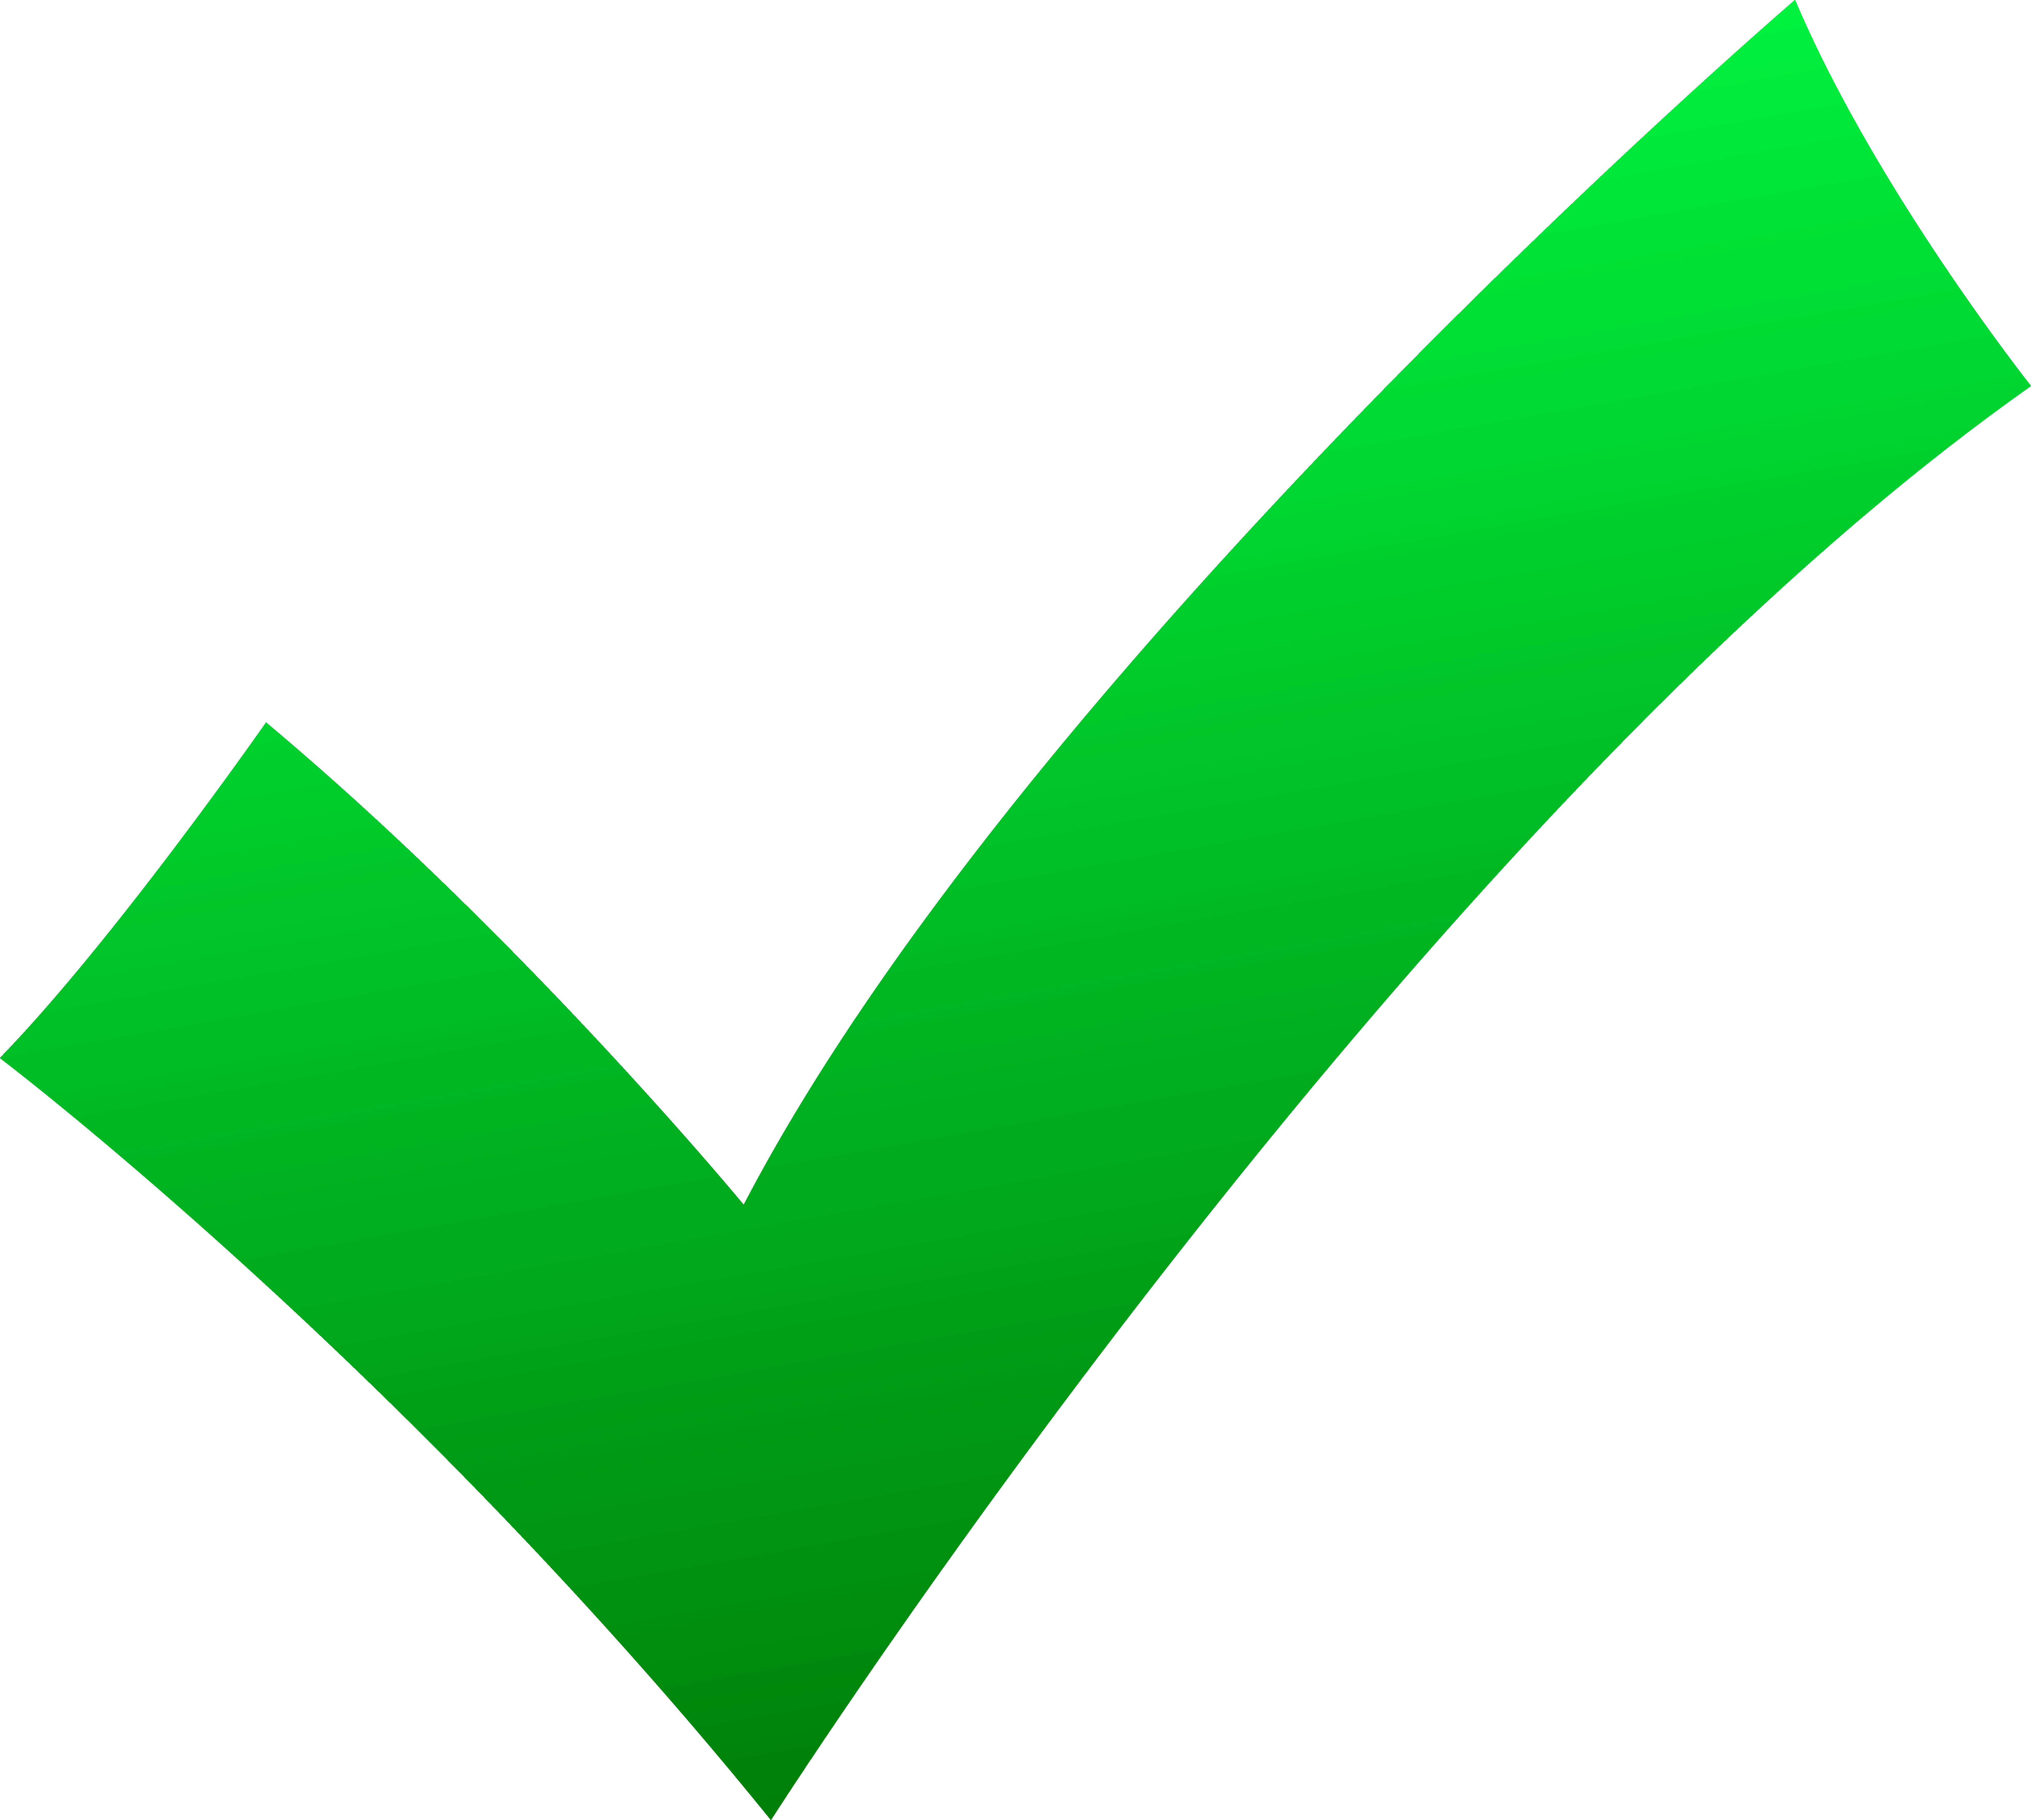 Checked Correct Right Yes Checkmark Vector About - Clipart library